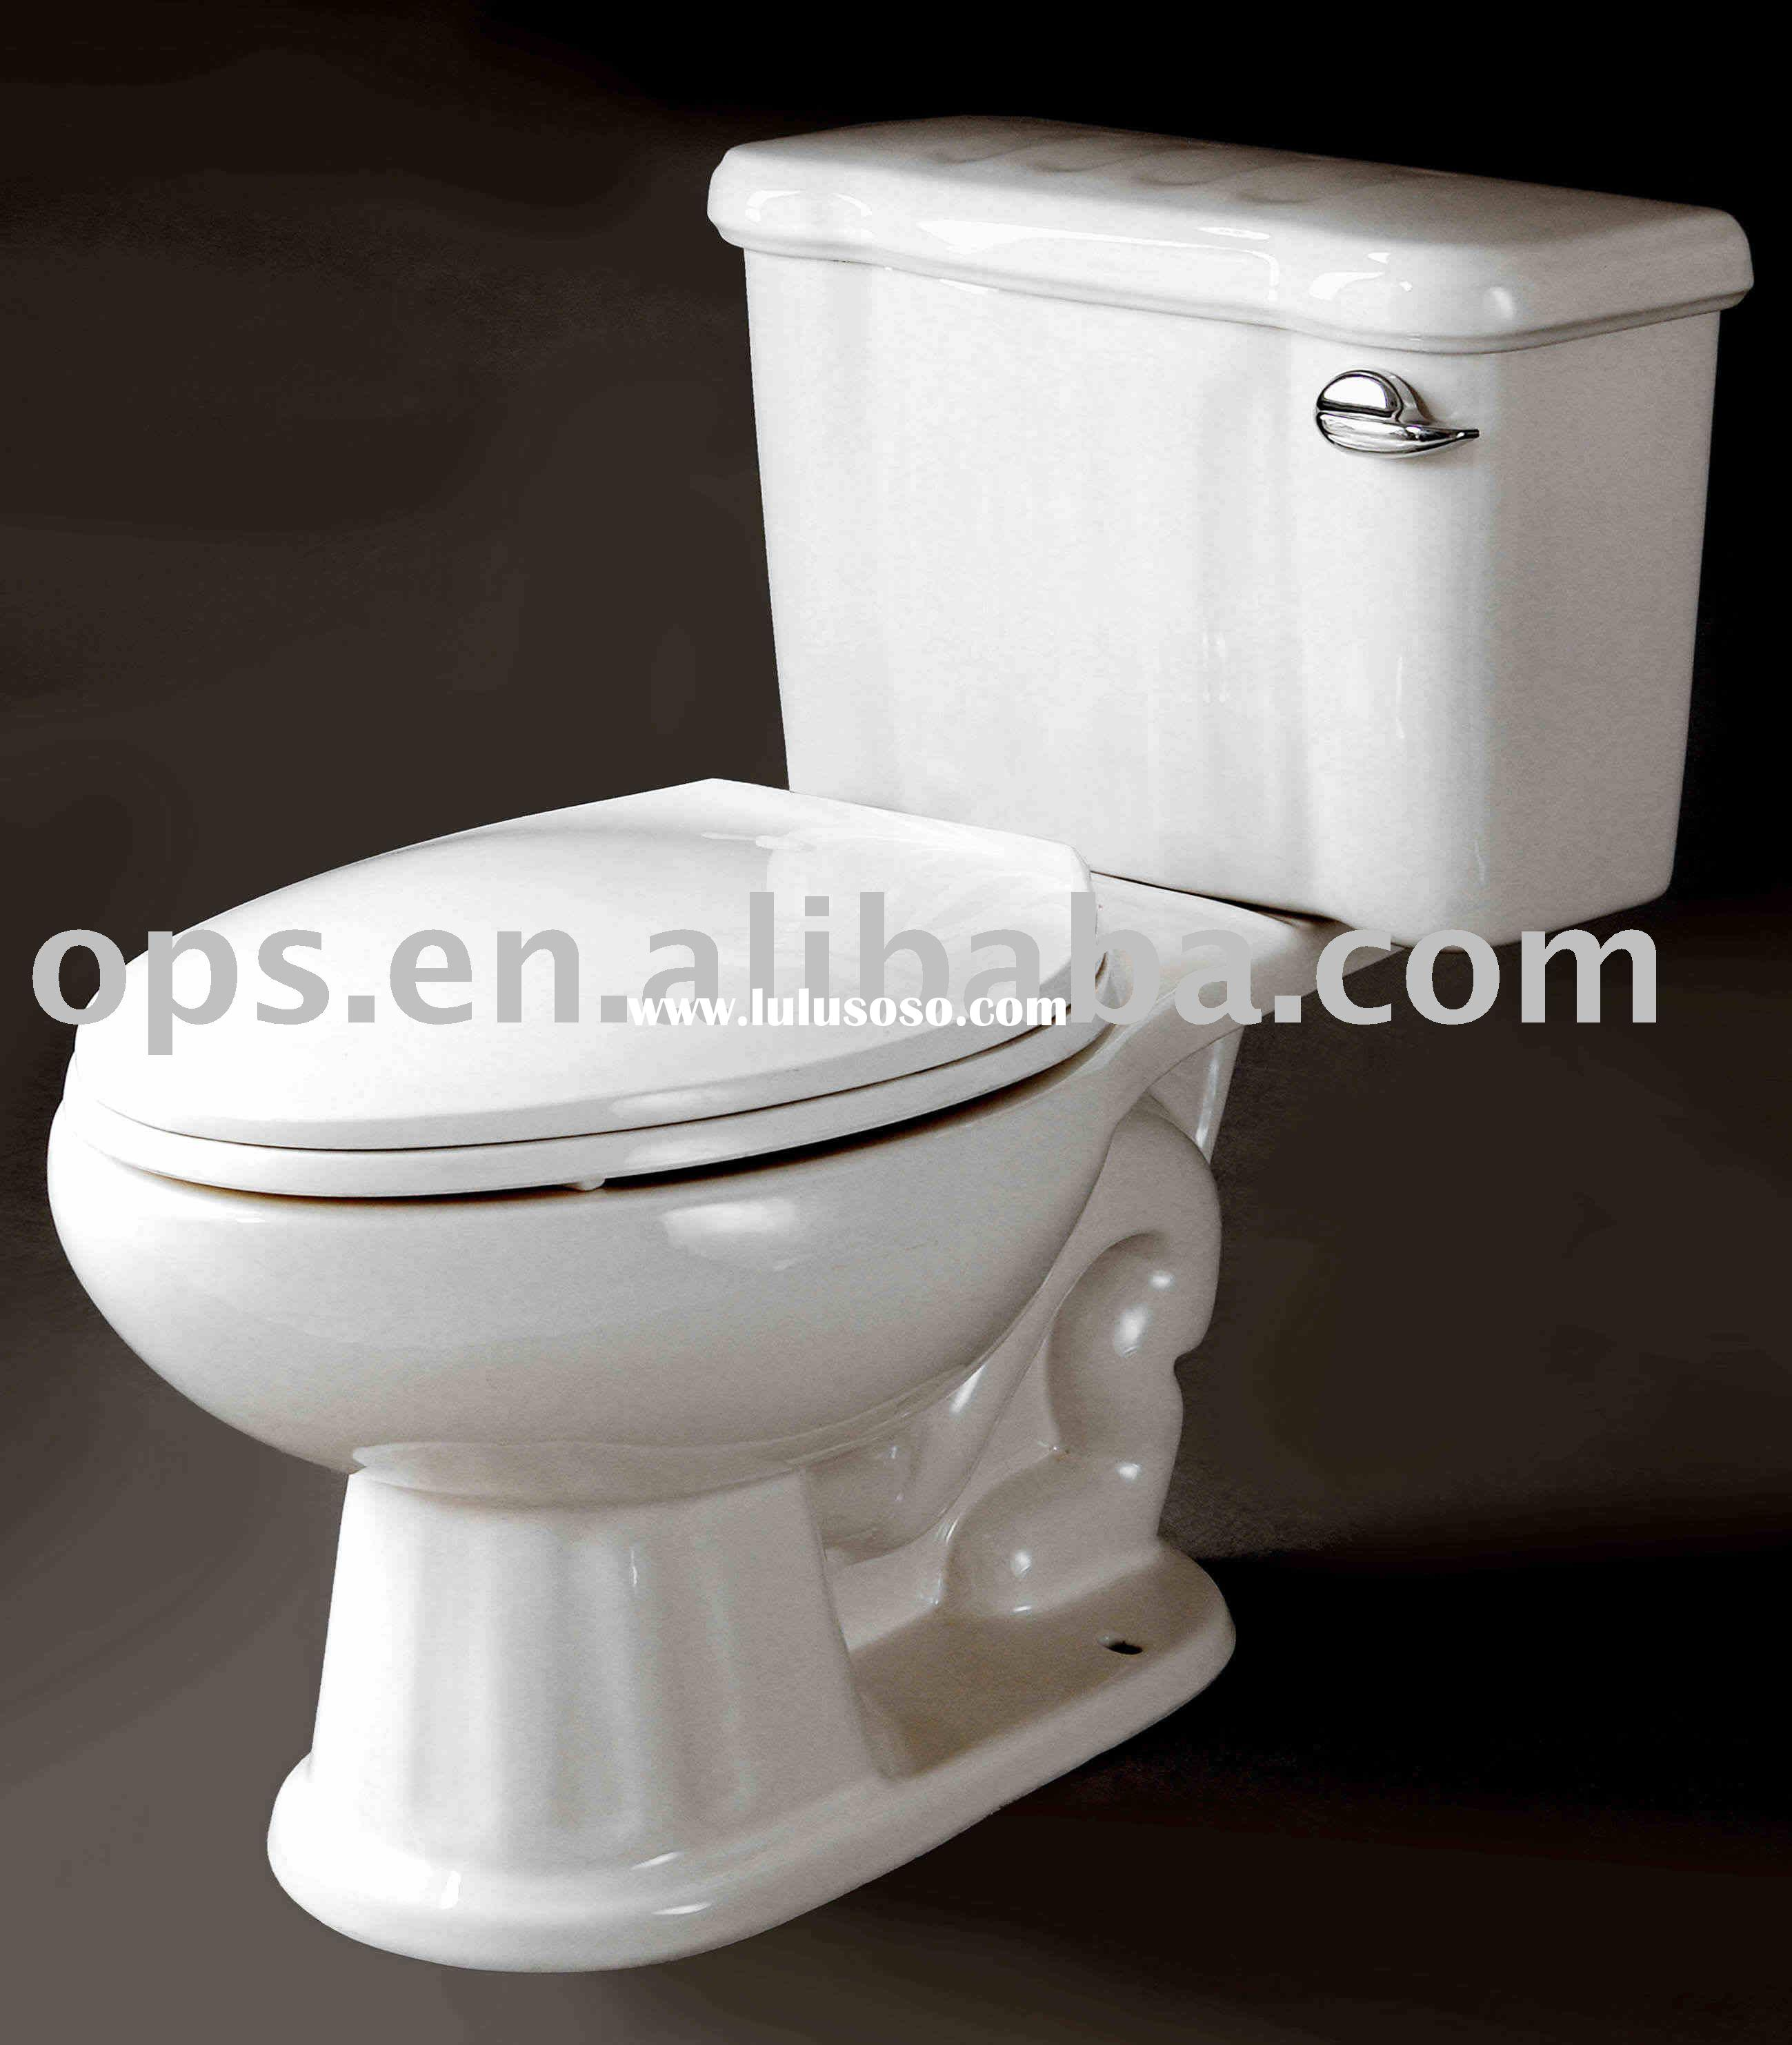 Victorian Style Two-Piece Toilet, Elongated Toilet (T/X-6813E)